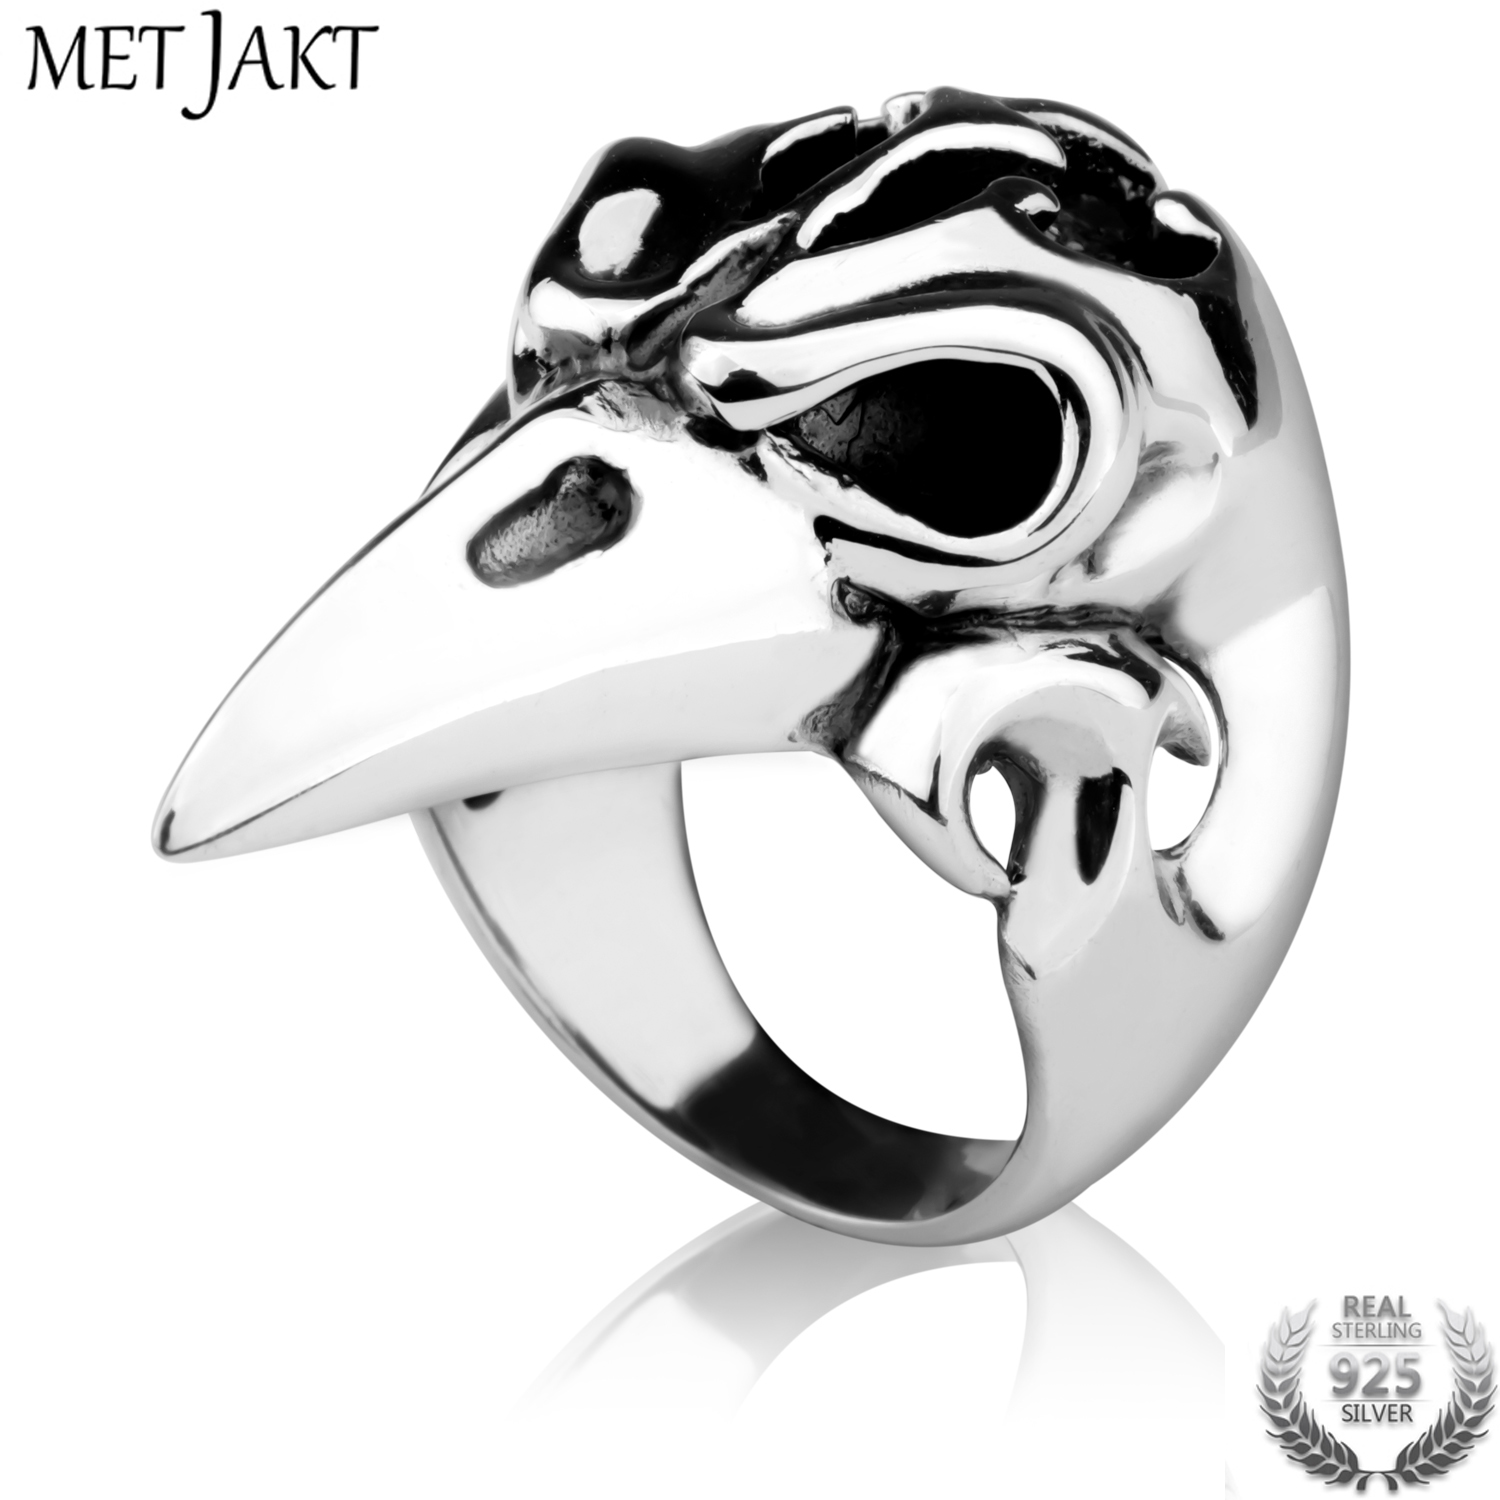 MetJakt Hyperbole Domineering Eagle Head Ring Solid 925 Sterling Silver Ring for Cool Mens Punk Rock JewelryMetJakt Hyperbole Domineering Eagle Head Ring Solid 925 Sterling Silver Ring for Cool Mens Punk Rock Jewelry